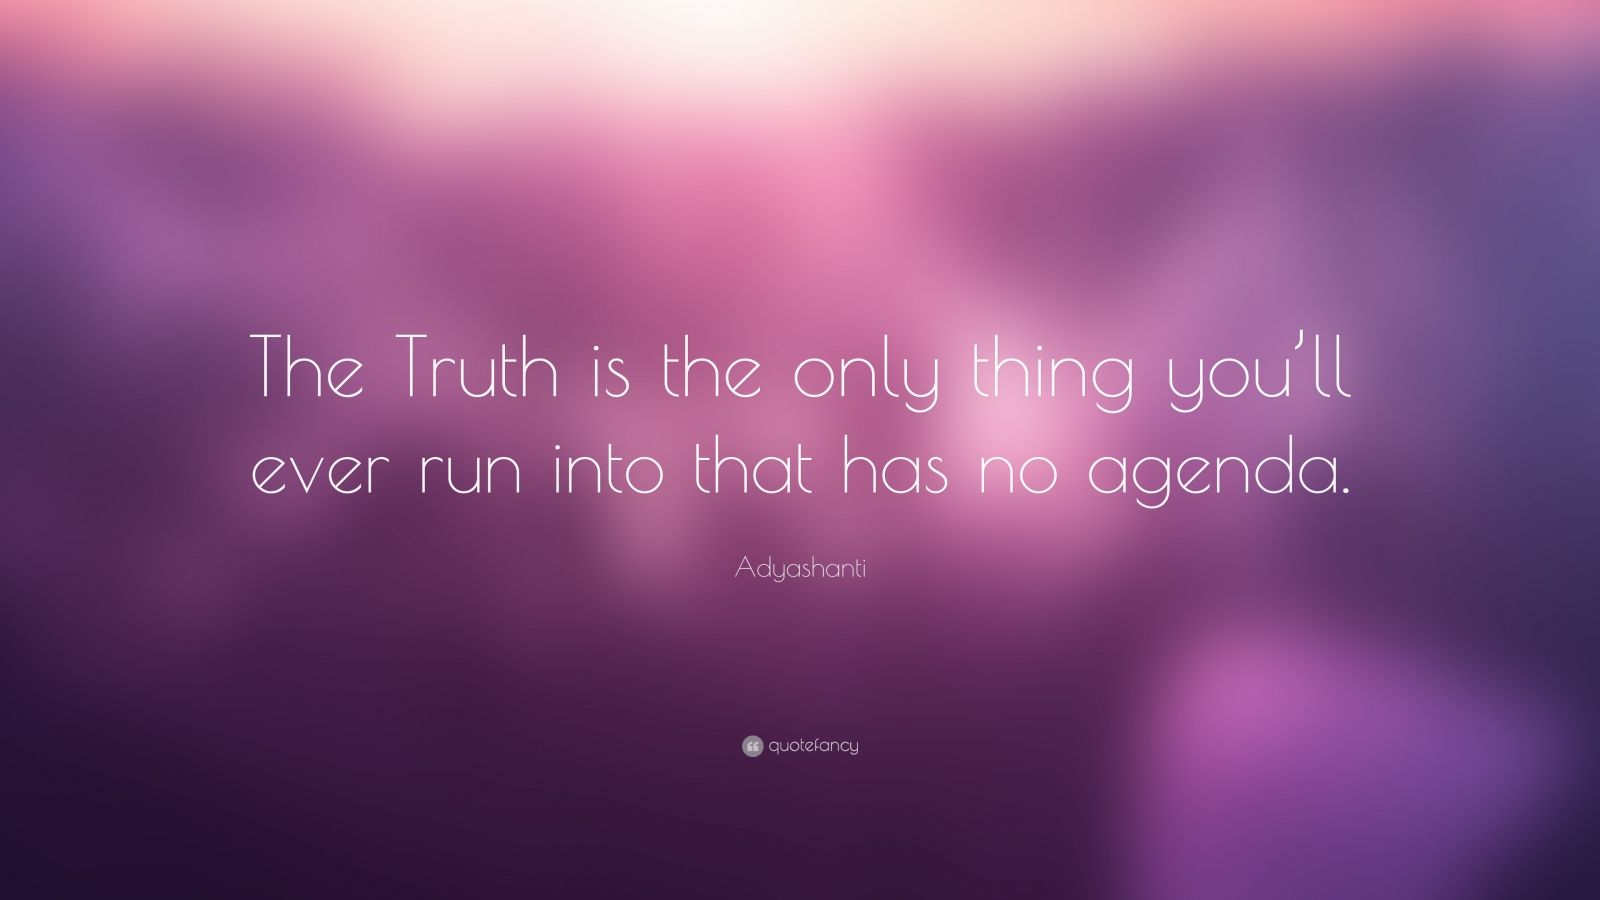 Adyashanti Quotes Adyashanti Quotes 100 Wallpapers  Quotefancy